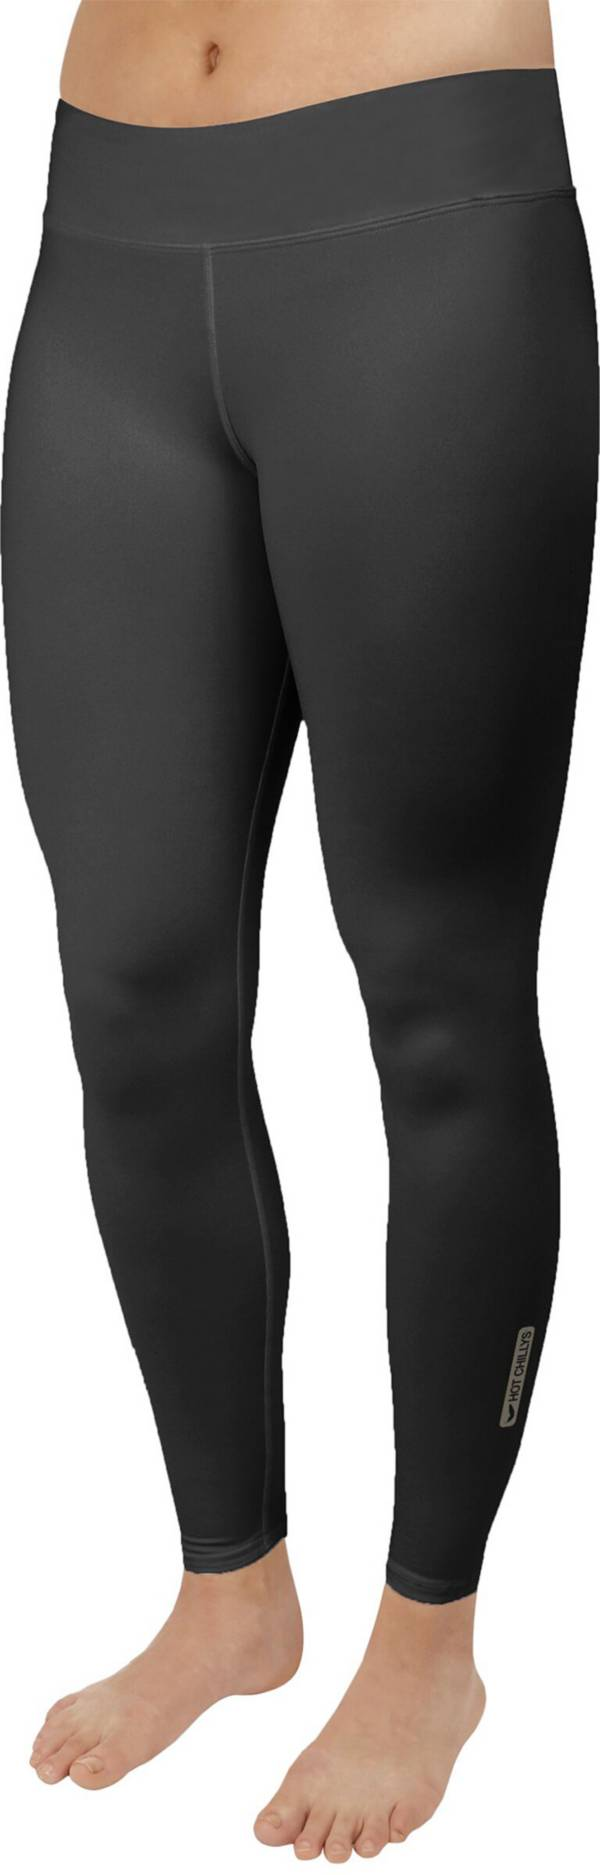 Hot Chillys Women's Micro-Elite Chamois Pants product image